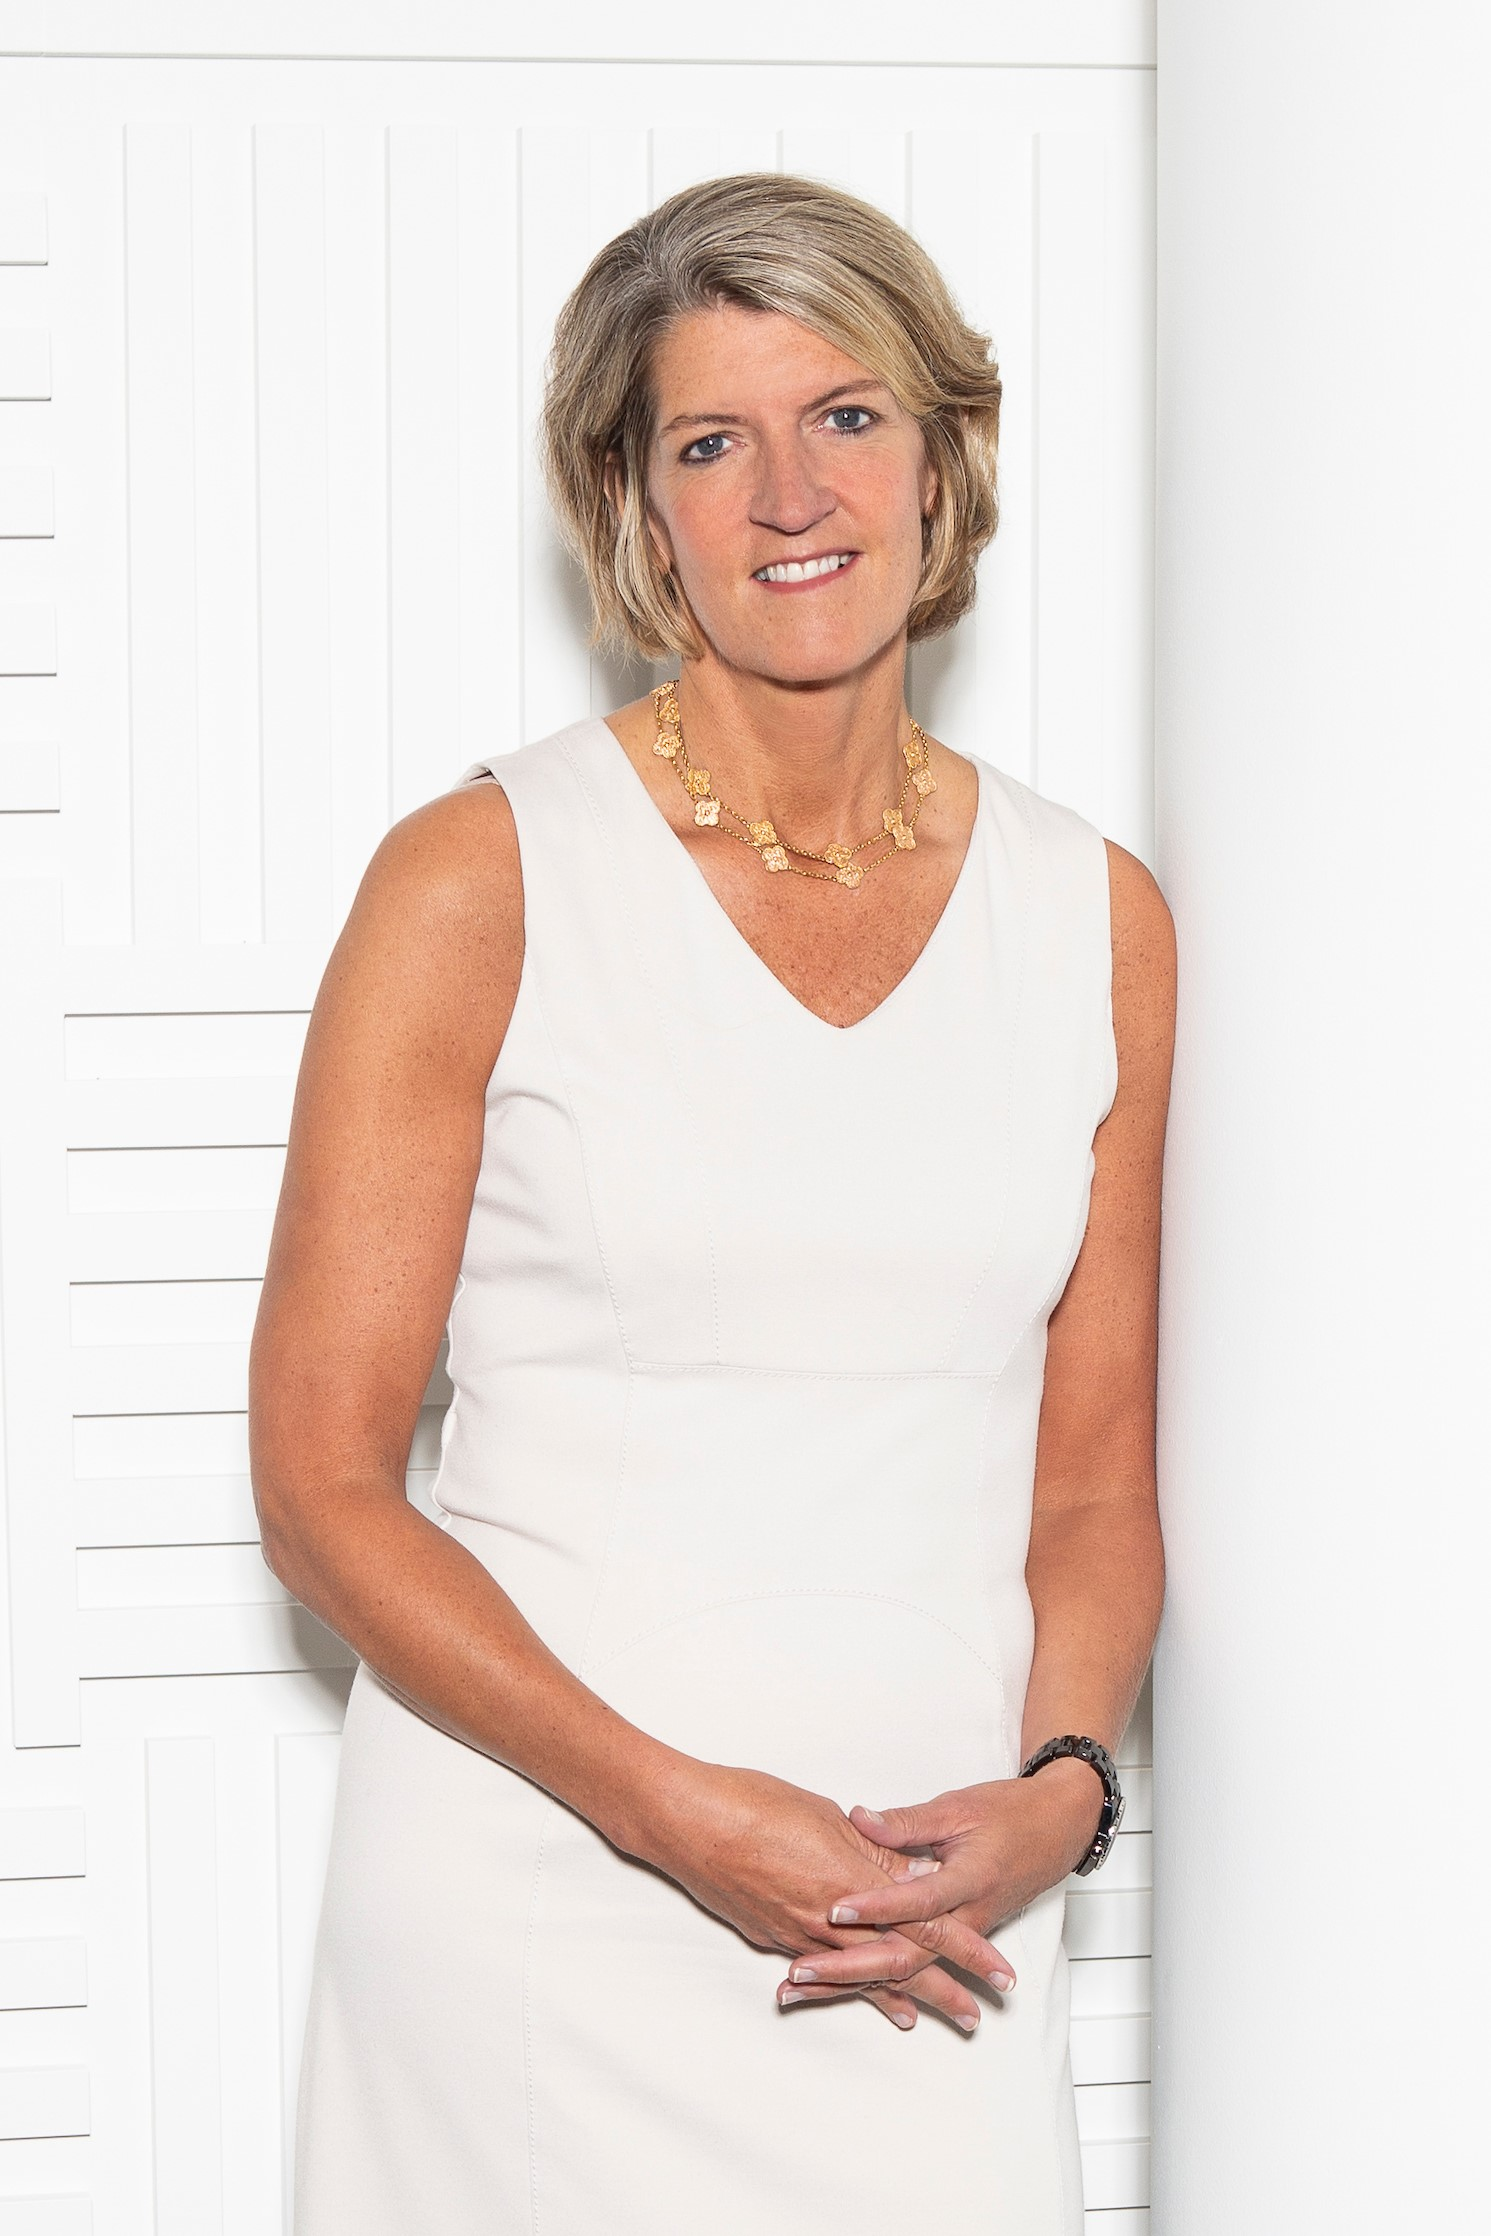 Accenture sweet Julie CEOs around the world on speed dial. Here's a chance to hear